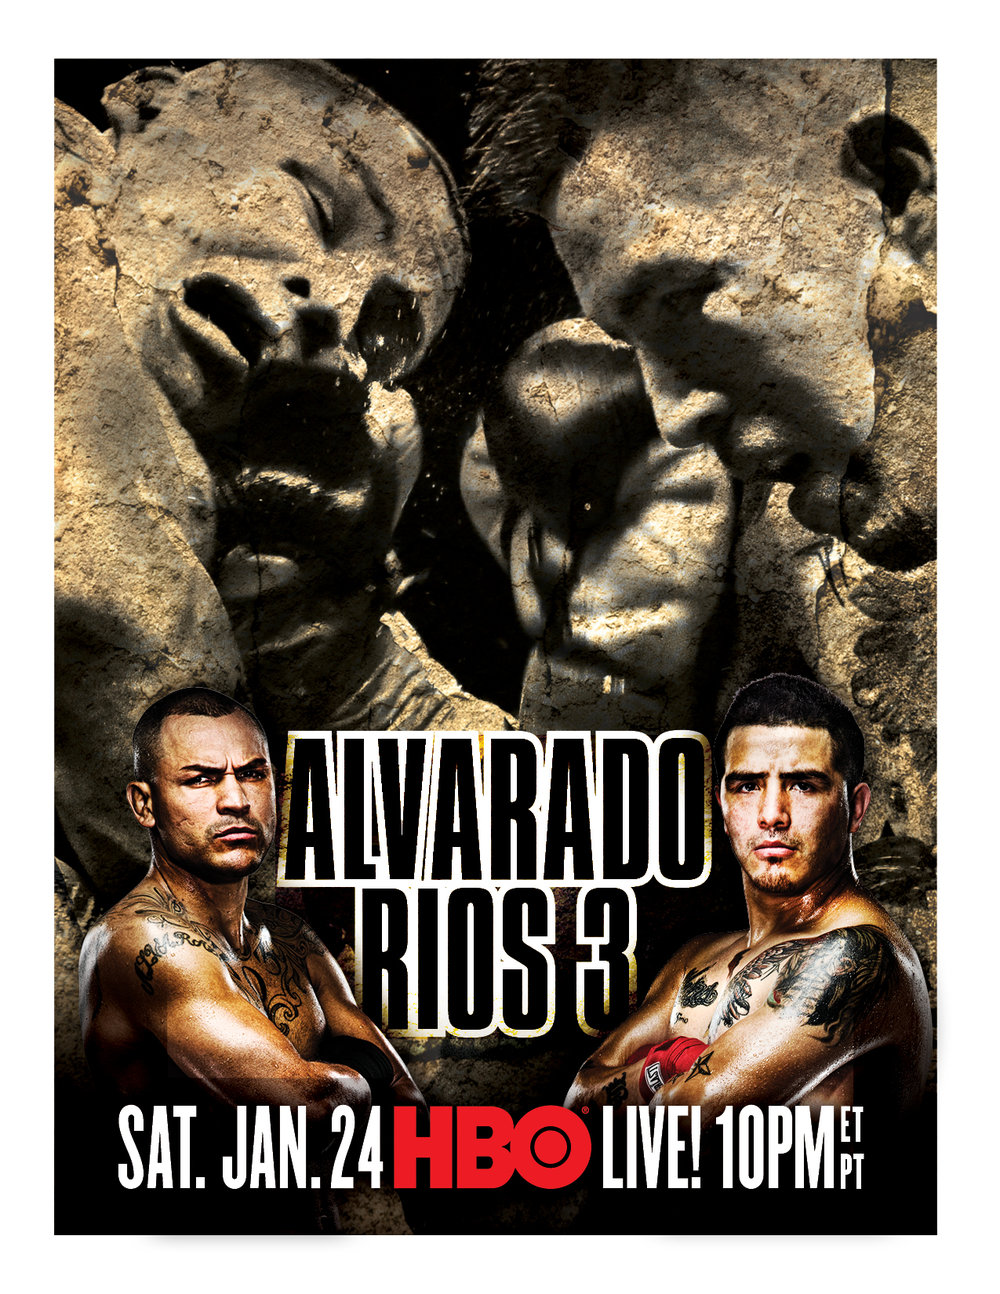 HBO Boxing P360 Website46.jpg